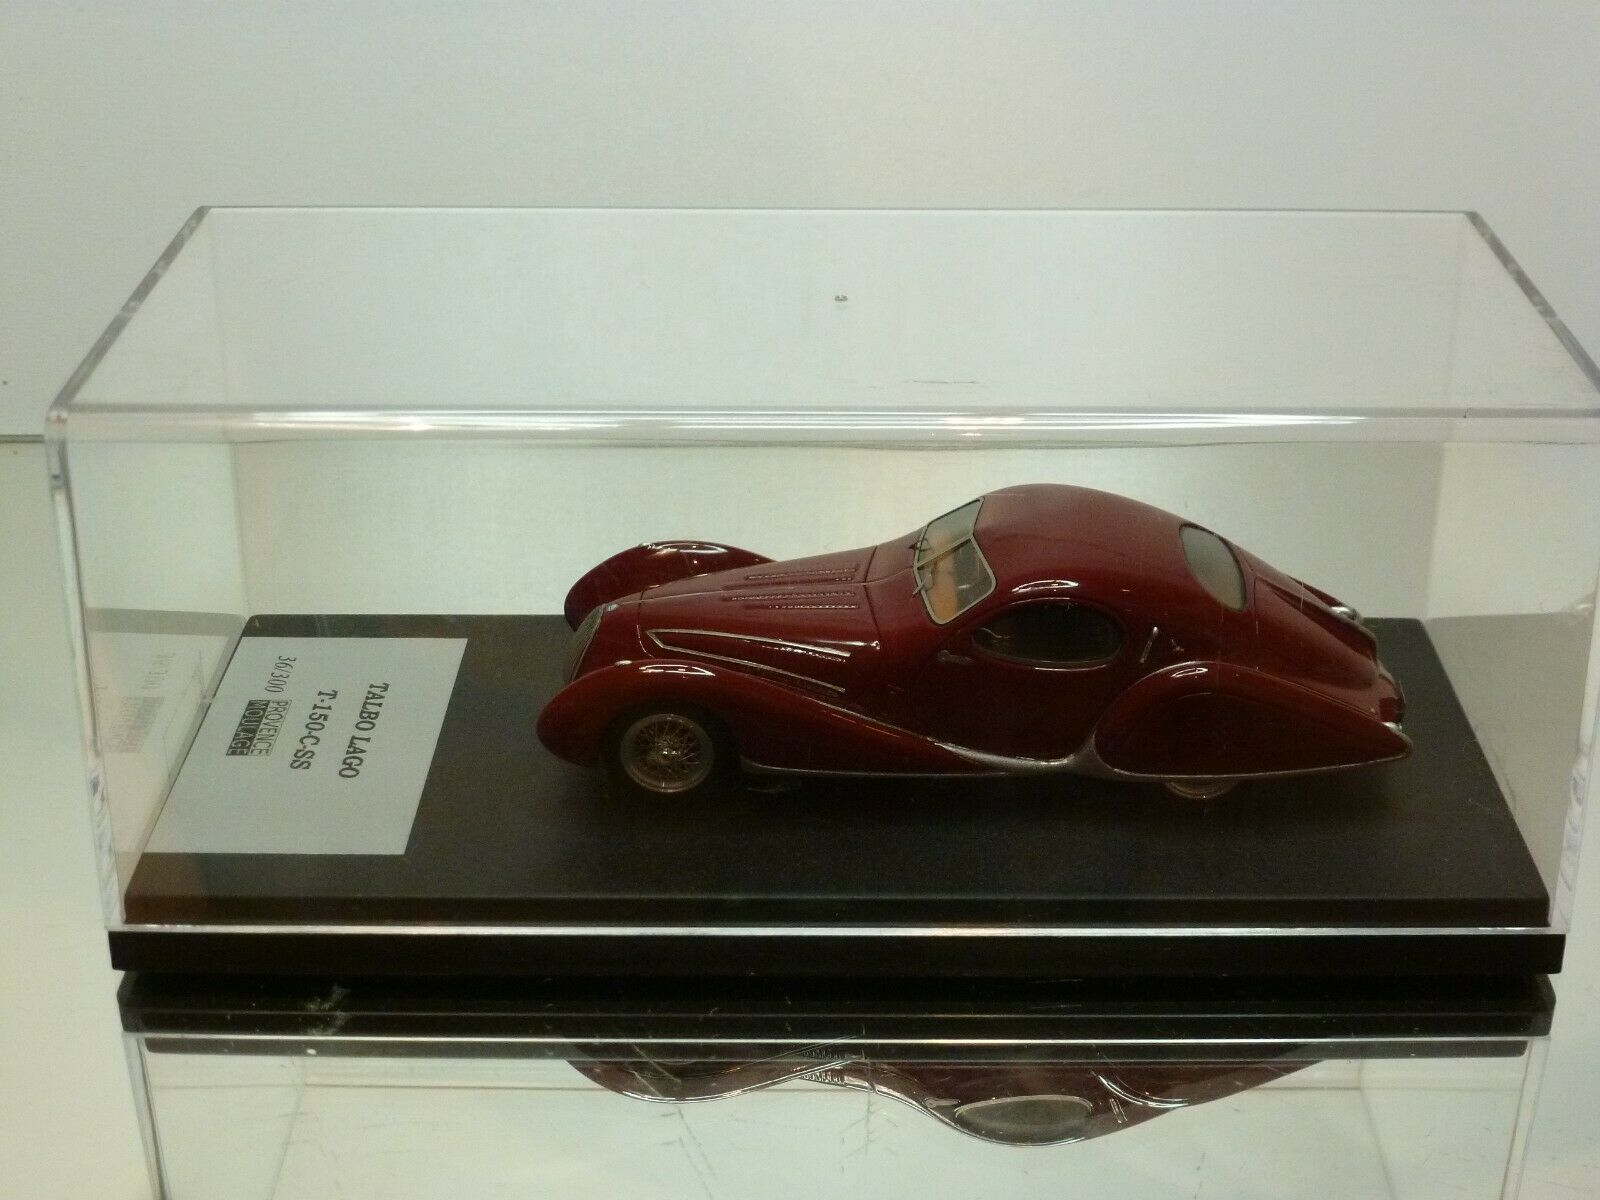 PROVENCE MOULAGE TALBOT LAGO T 150C SS - rosso 1 43 - EXCELLENT IN BOX